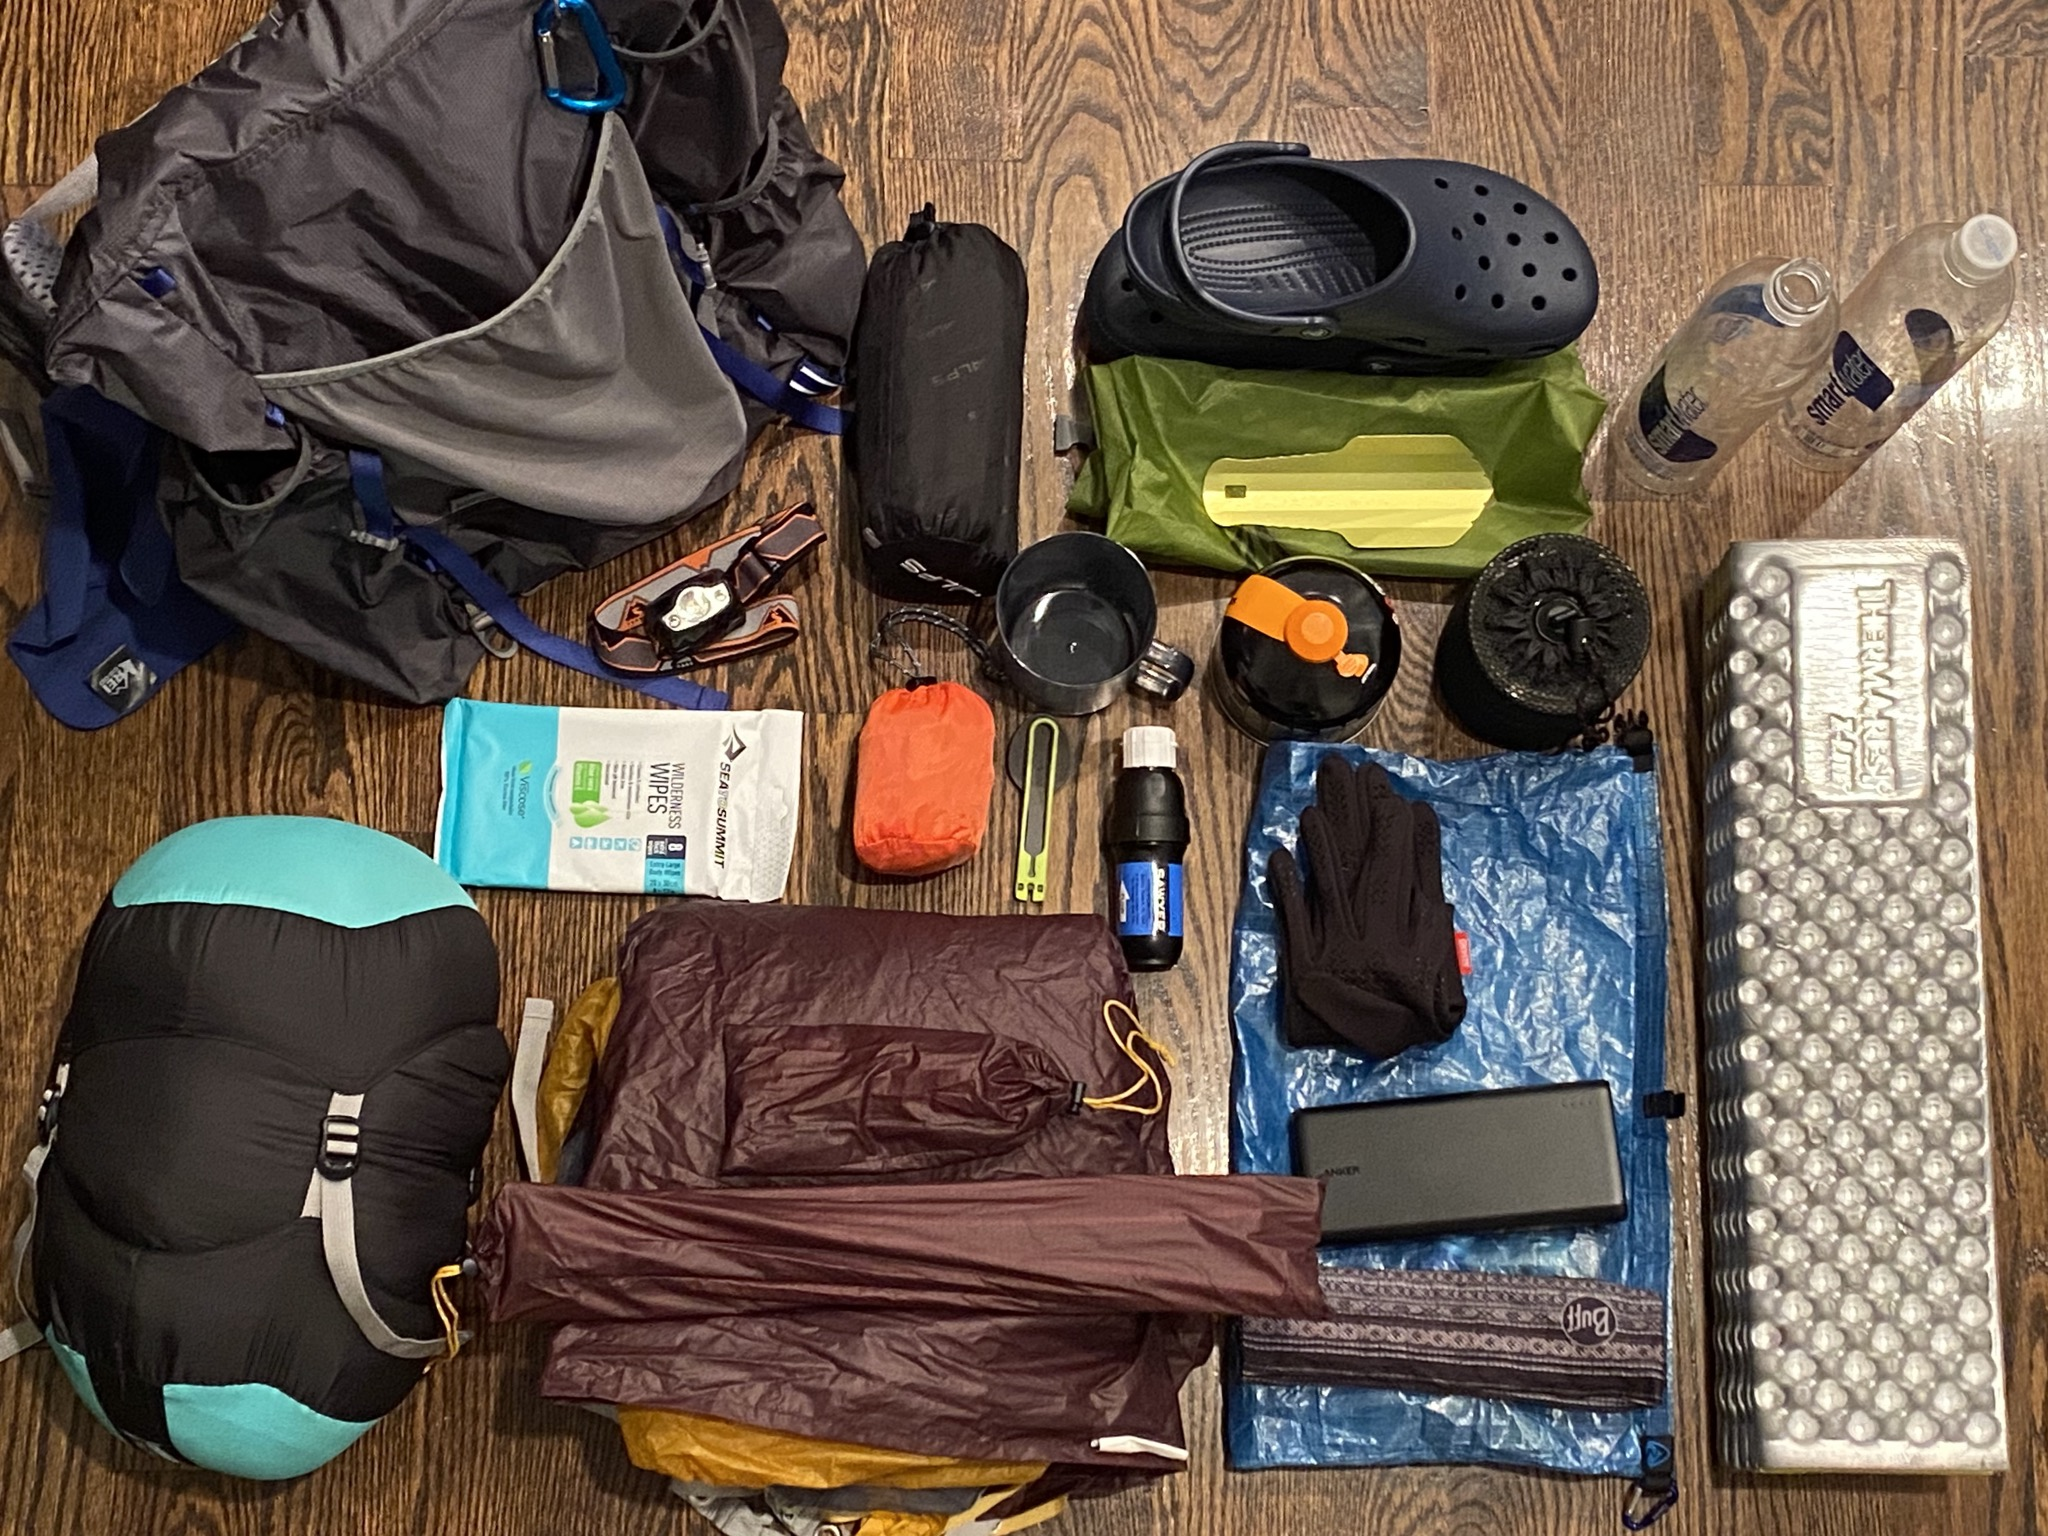 """""""Gear Photo"""" - Backpacking gear laid out on a hardwood floor"""